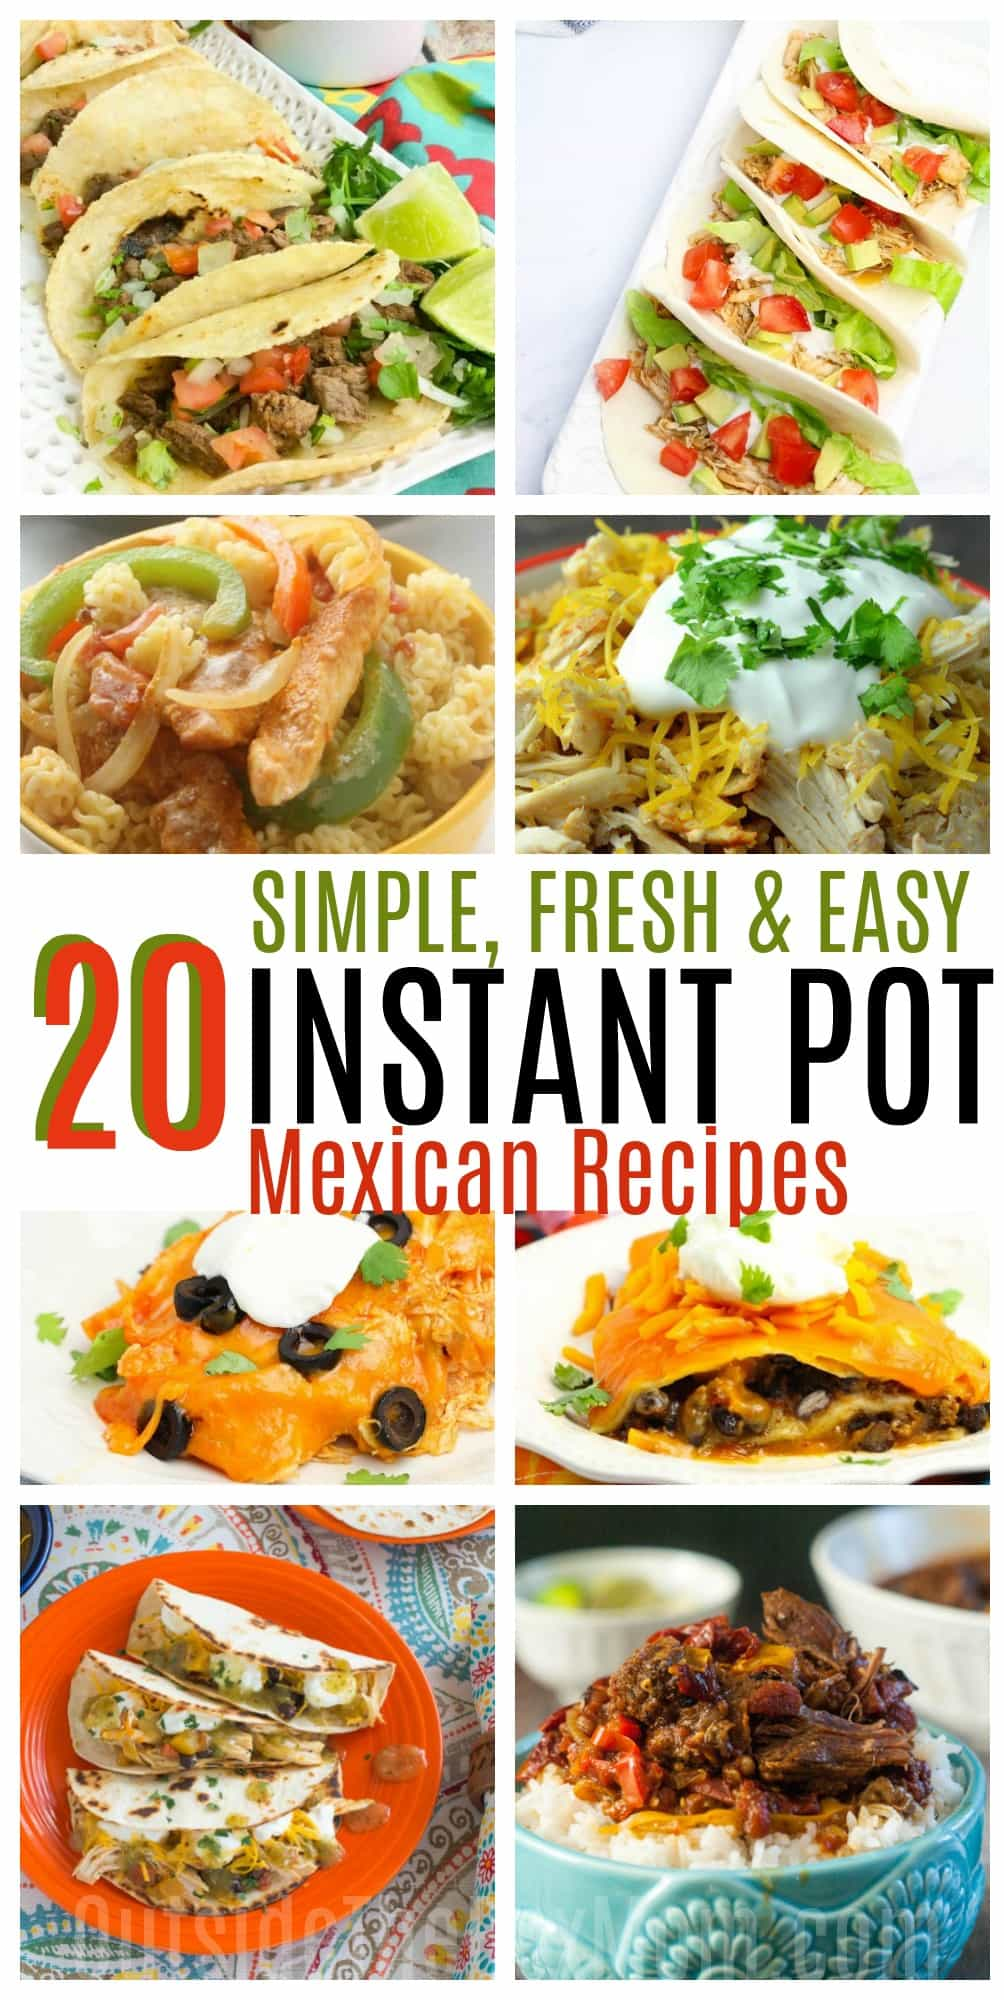 20 instant pot mexican recipes working mom blog outside the box mom mexican instant pot recipes instant pot recipes forumfinder Images